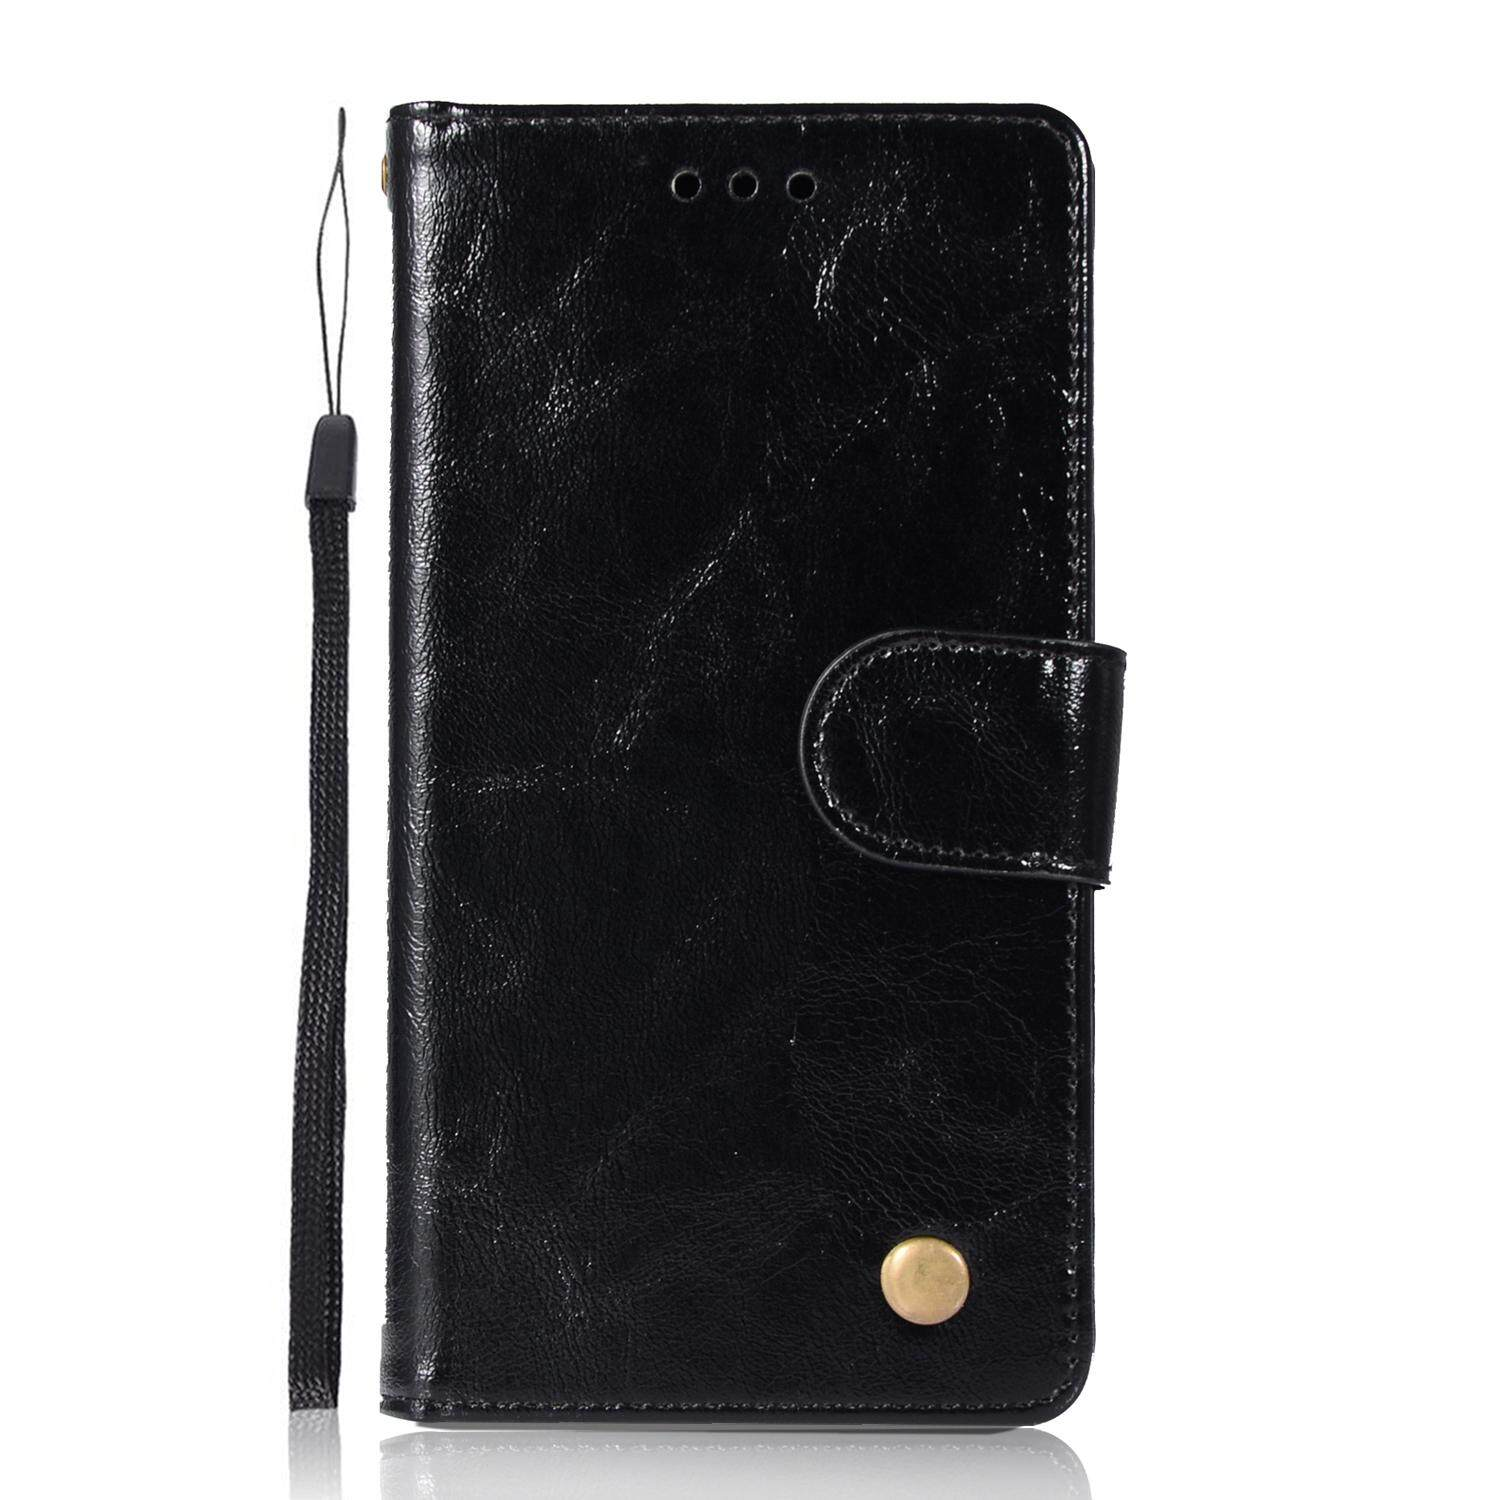 Casing For Huawei P10 Lite,reto Leather Wallet Case Magnetic Double Card Holder Flip Cover By Life Goes On.